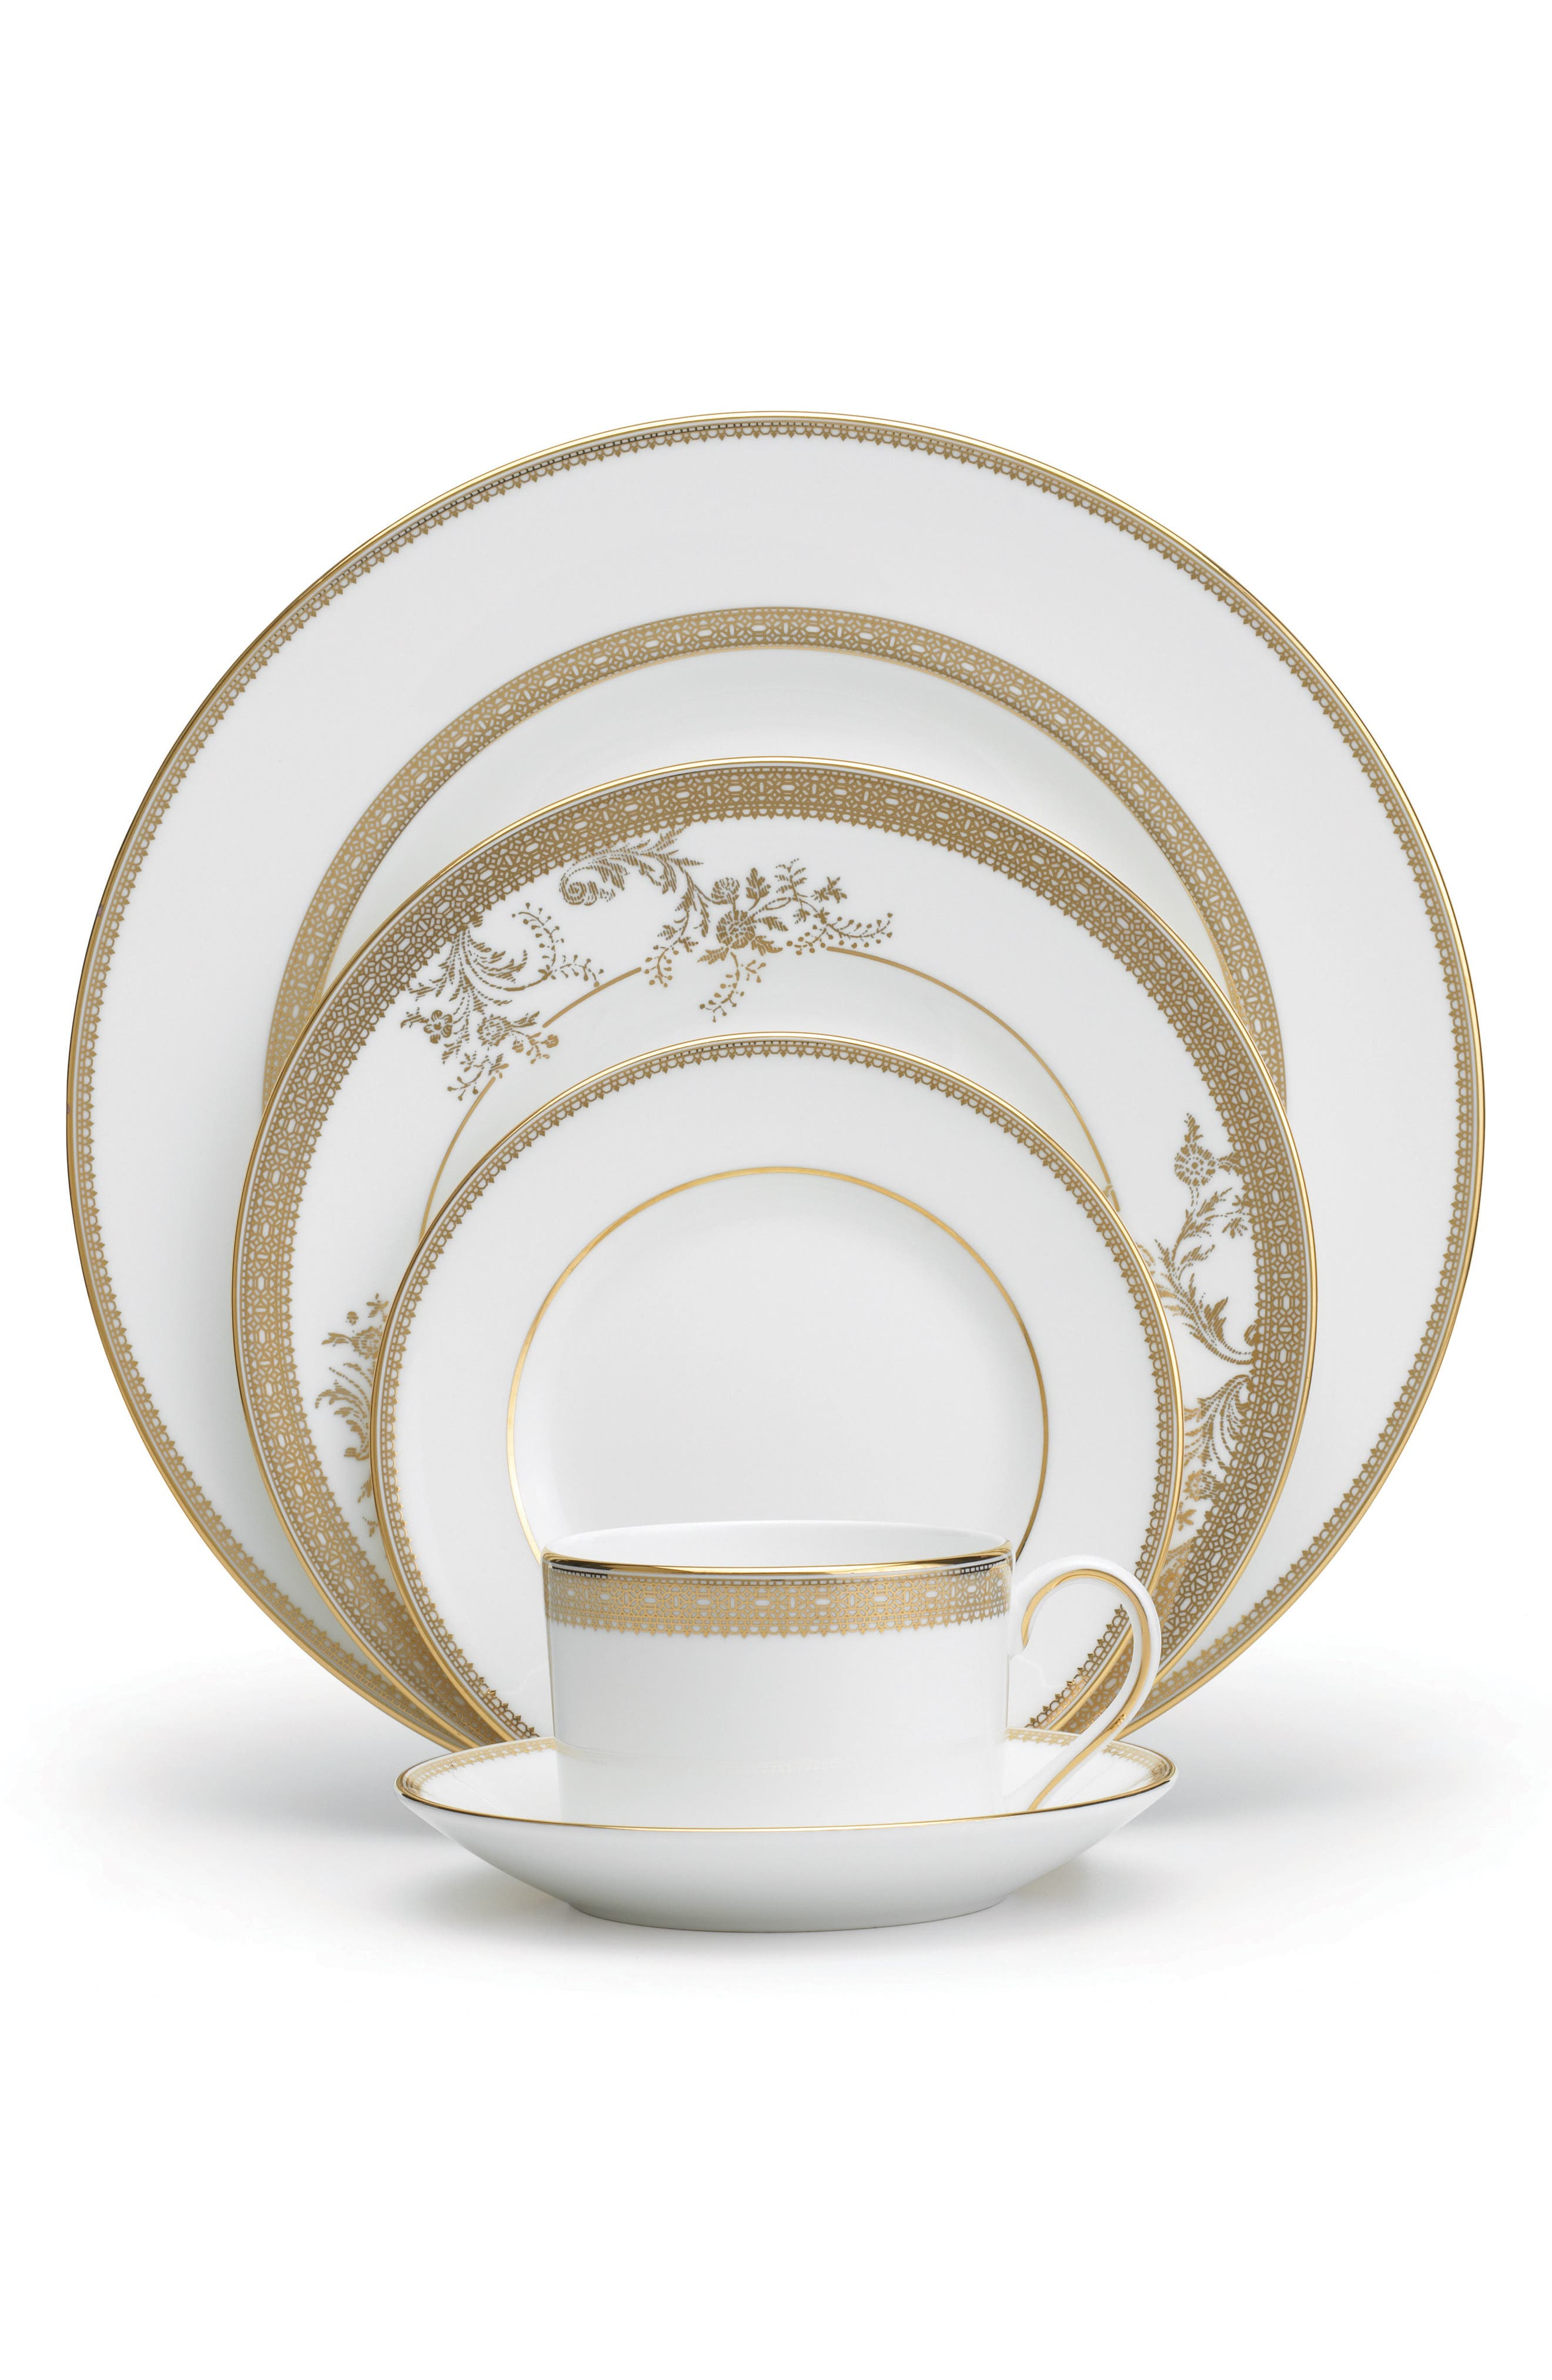 5-Piece Bone China Dinnerware Place Setting,                             Main thumbnail 1, color,                             White